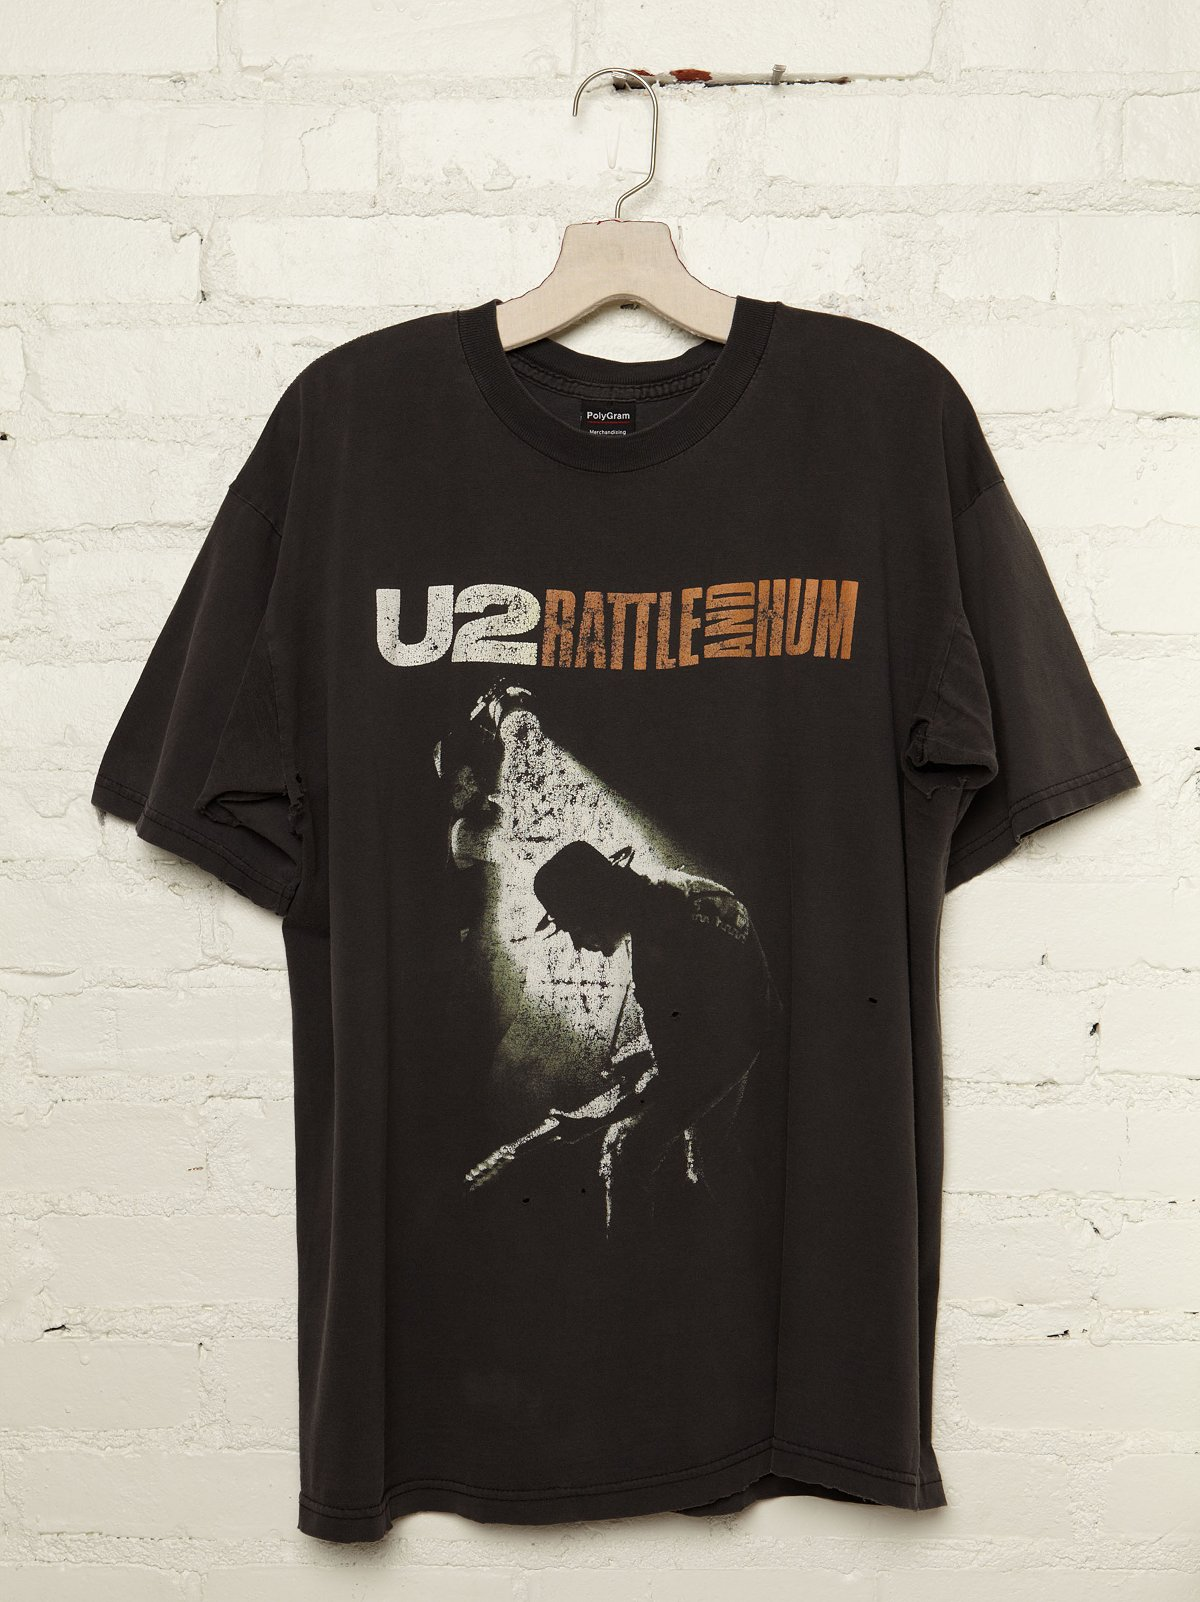 Vintage U2 Battle and Hum Rock Tee